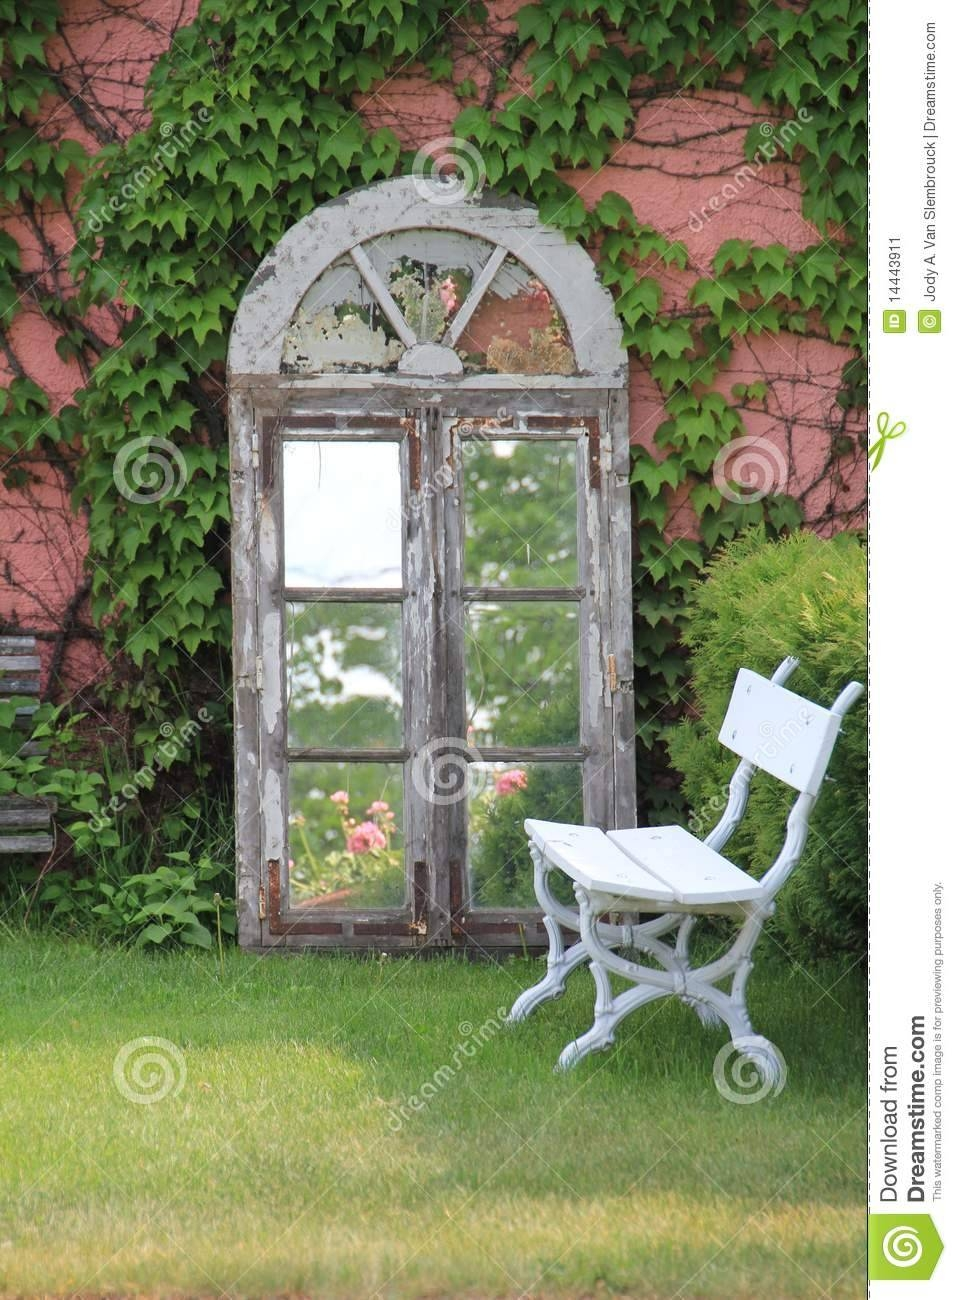 Ordinaire Ivy Covered Wall With Mirror And Bench Stock Image   Image: 14443911 Inside Garden  Wall